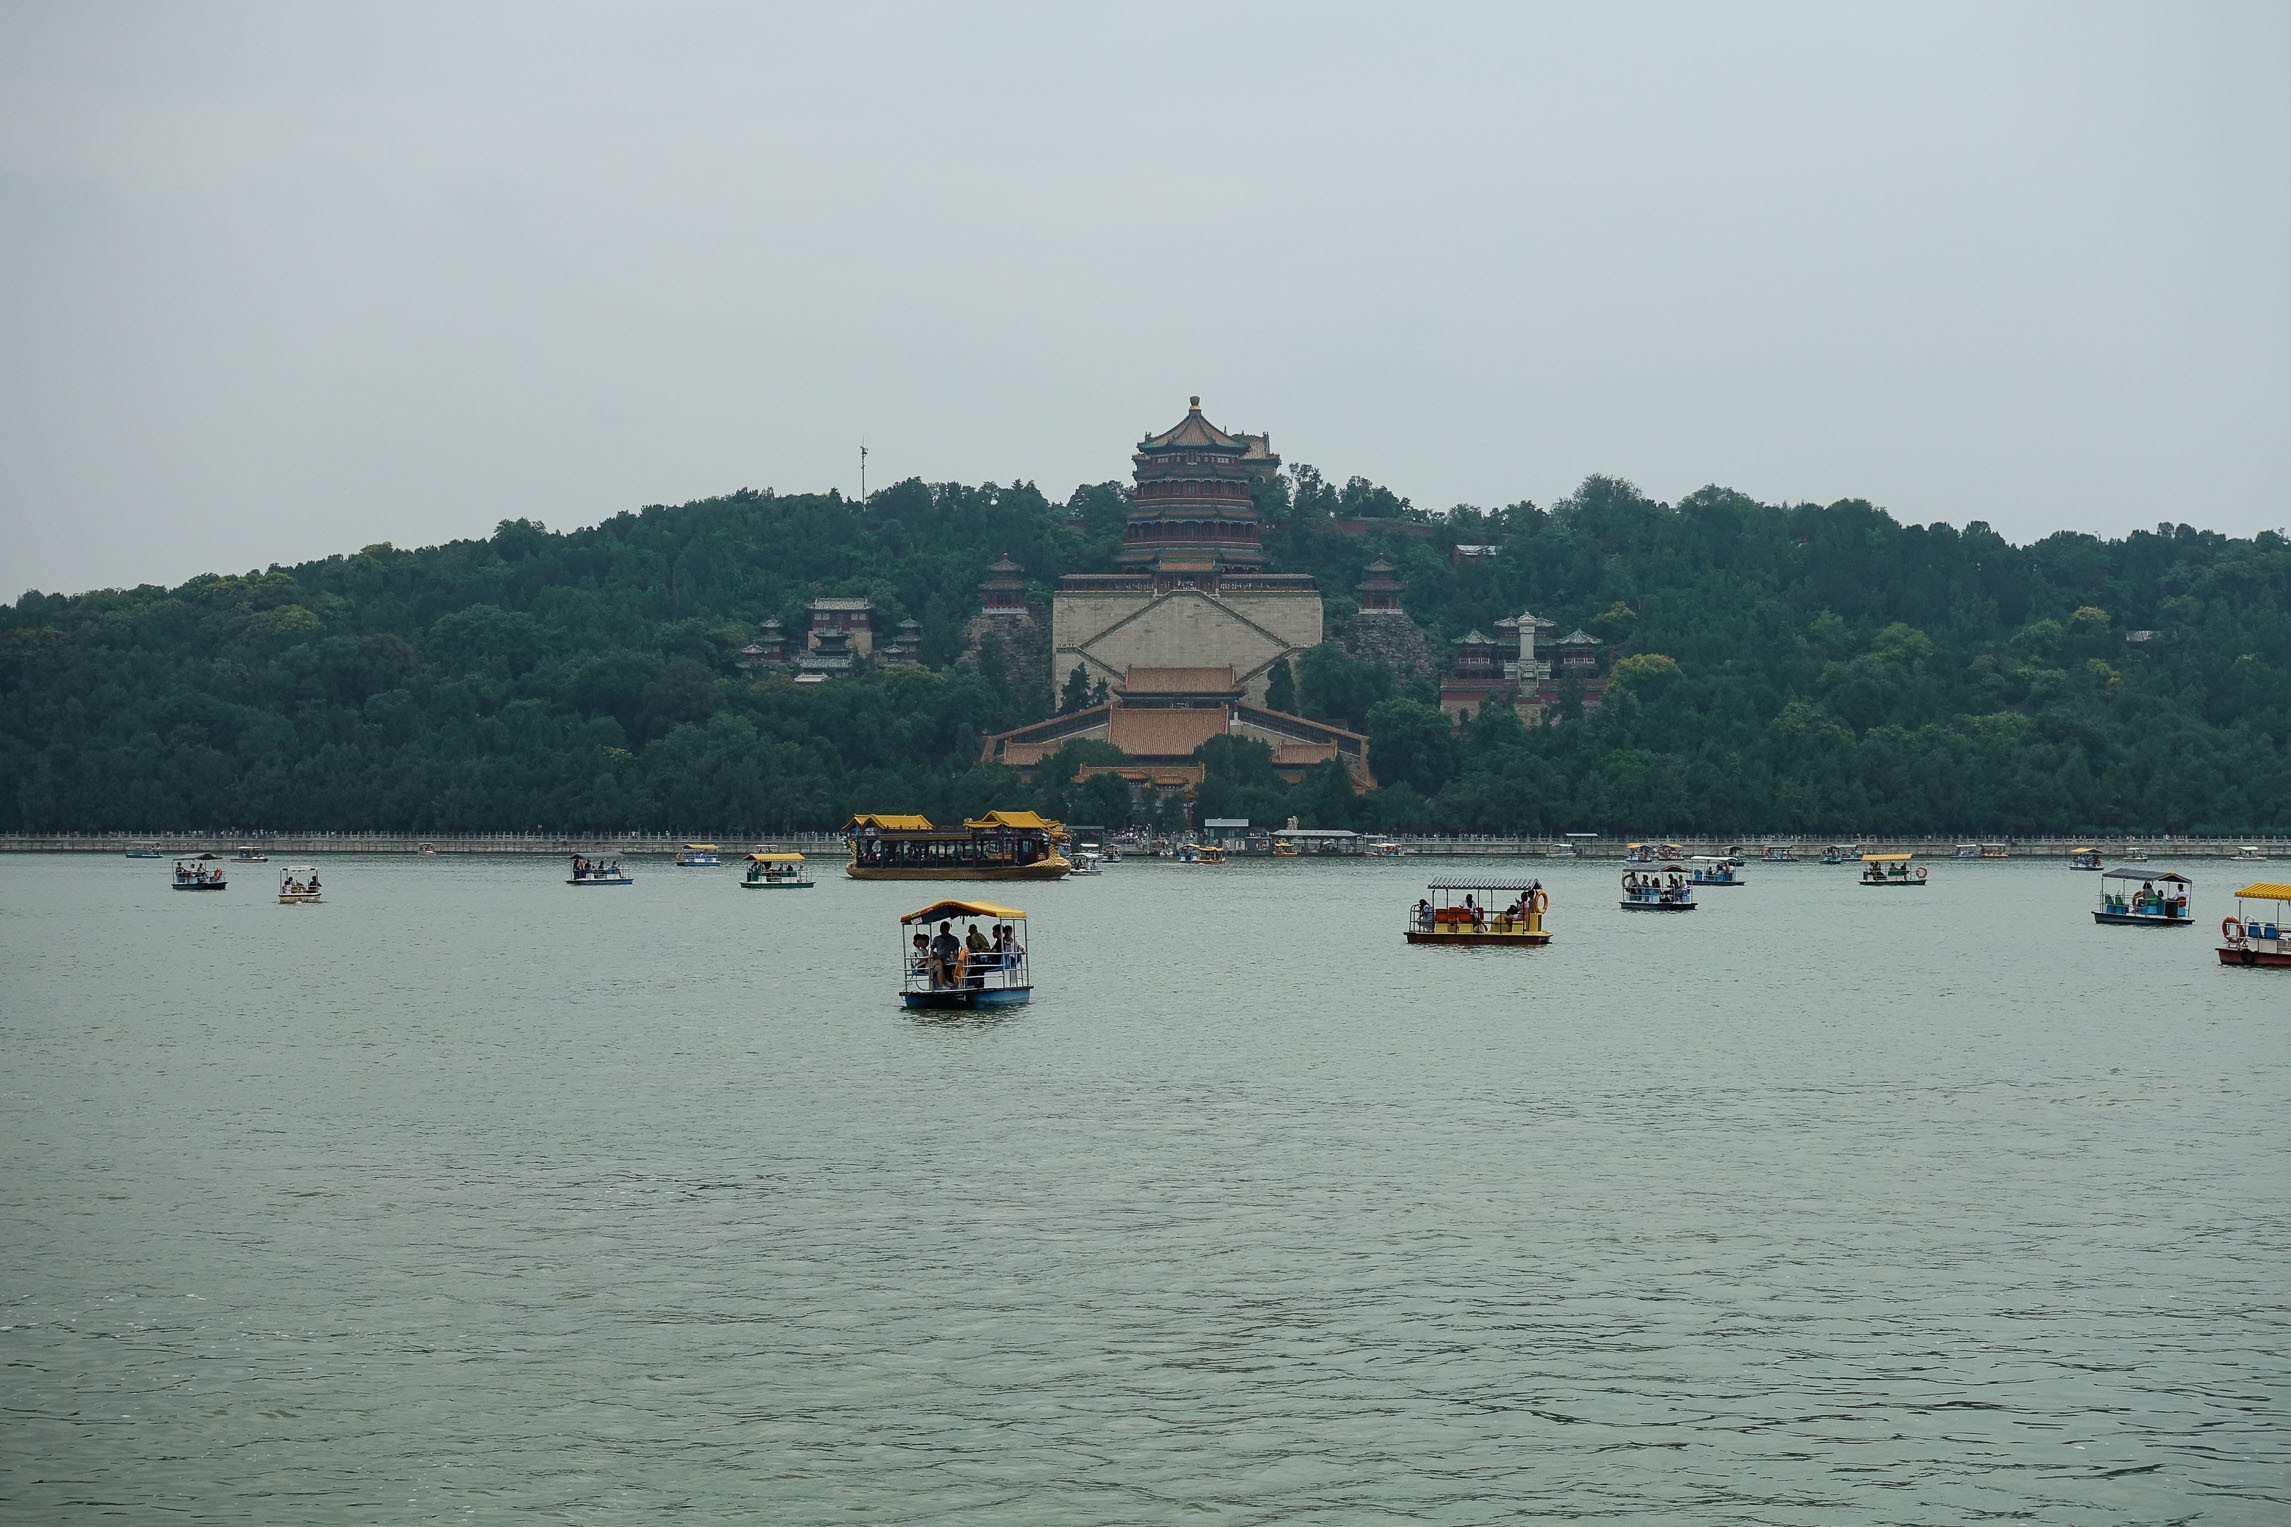 Riding a boat to the Summer Palace